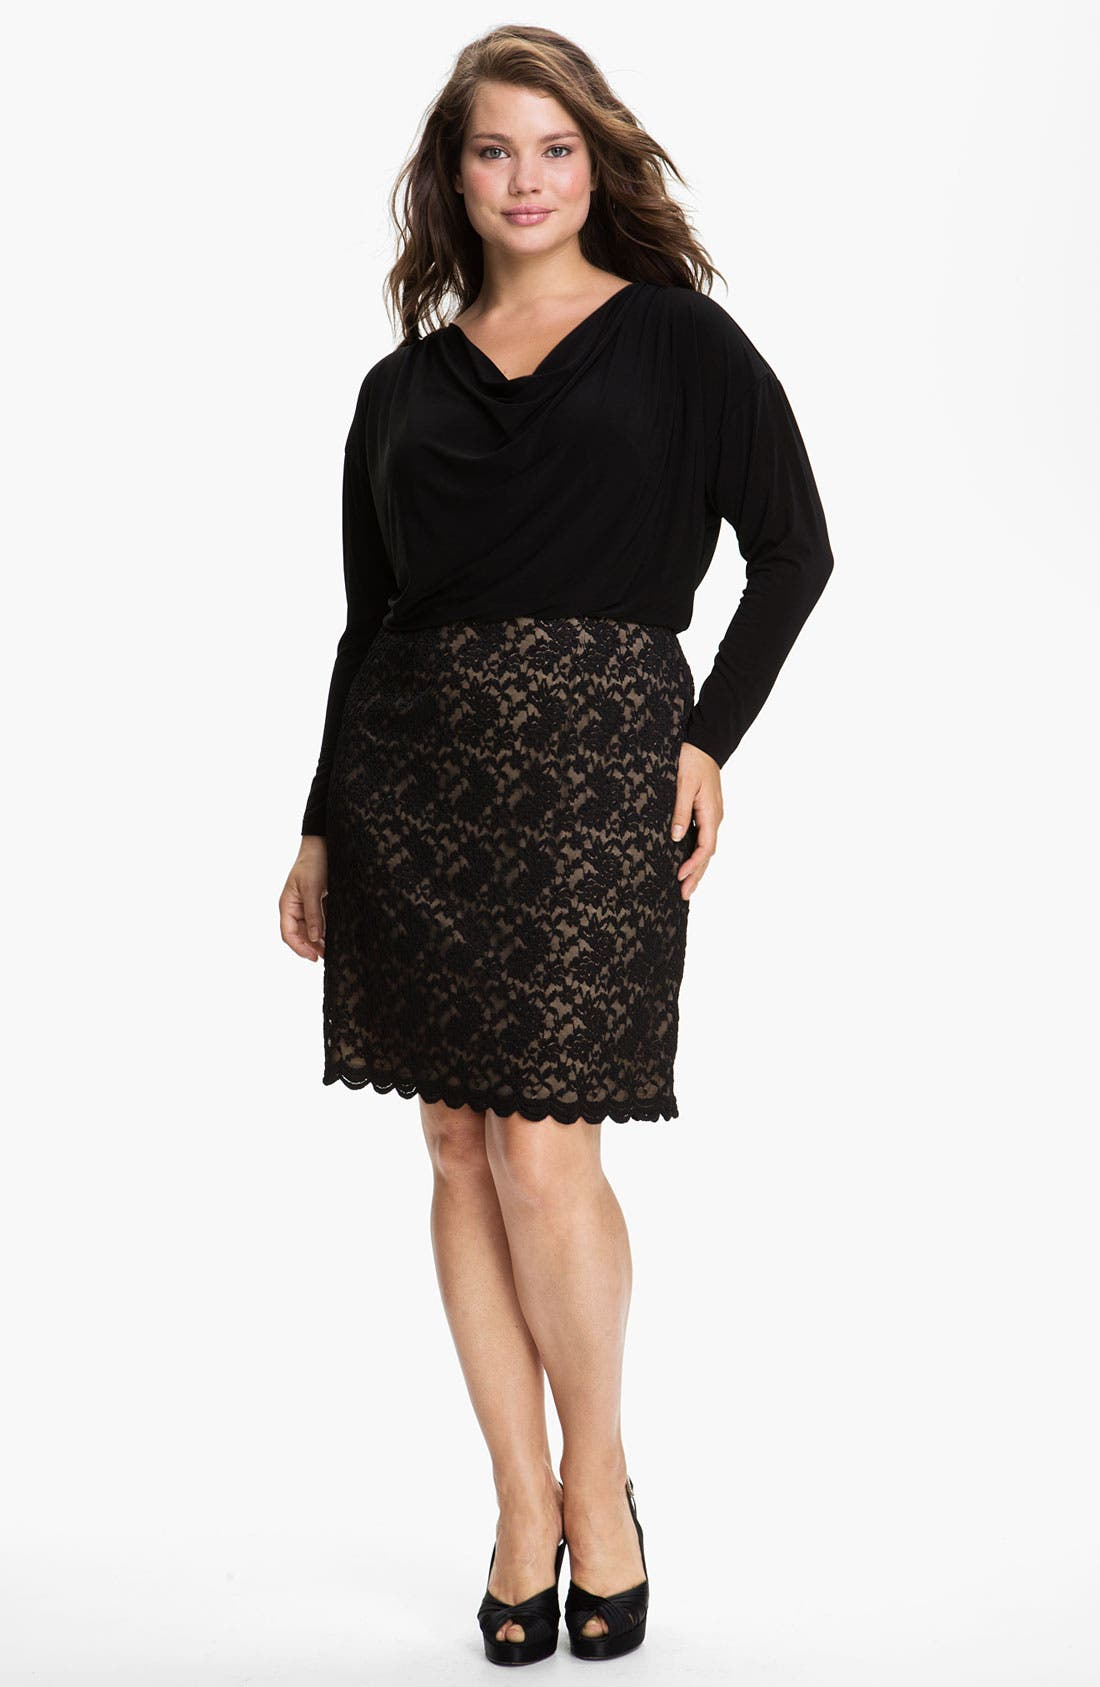 Alternate Image 1 Selected - Adrianna Papell Lace Skirt Blouson Dress (Plus)